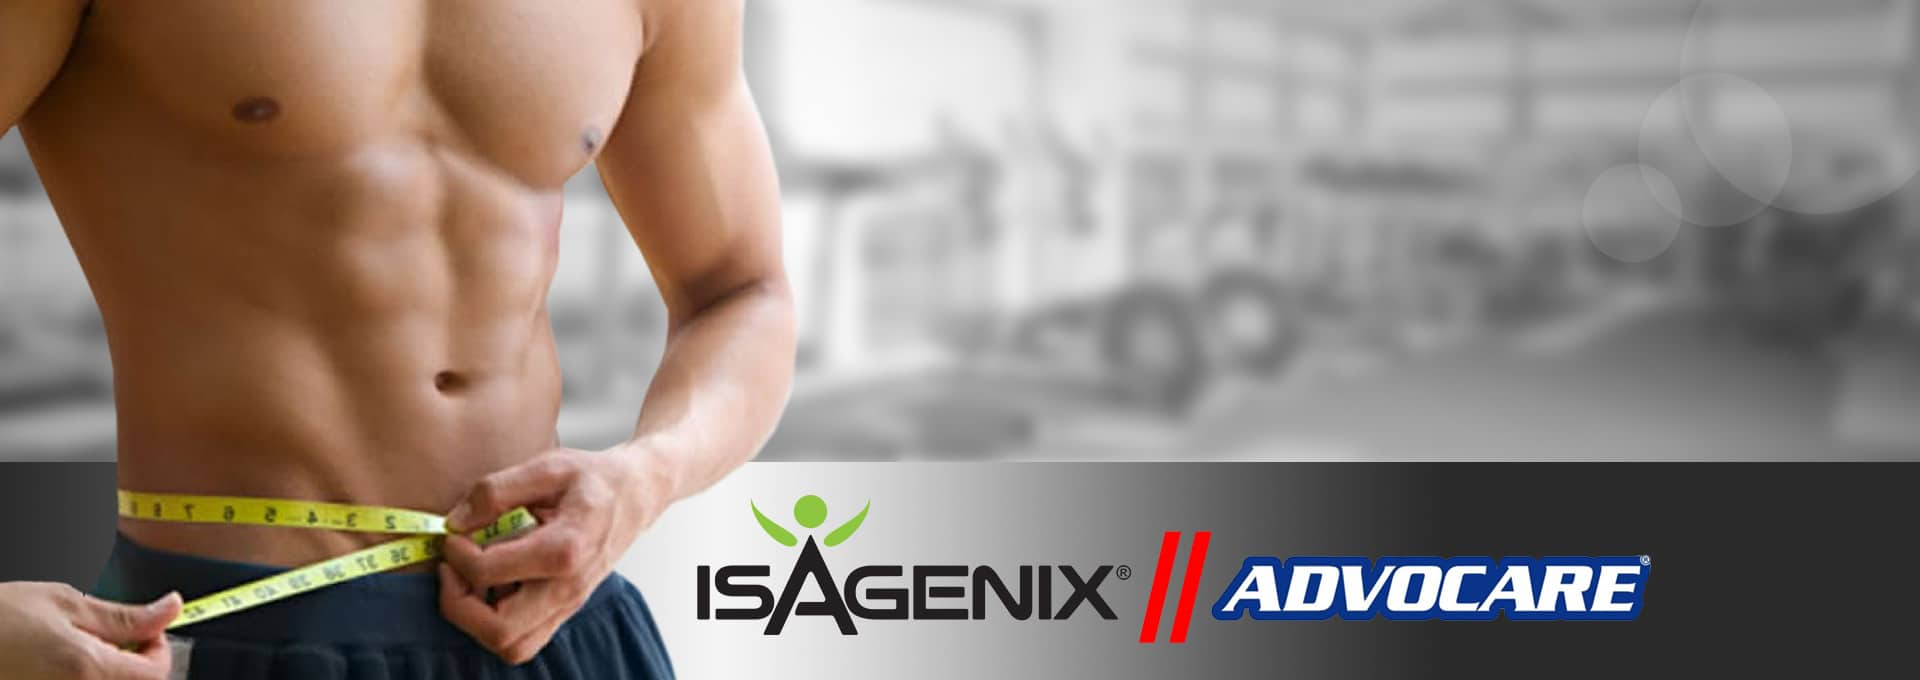 Isagenix vs Advocare review